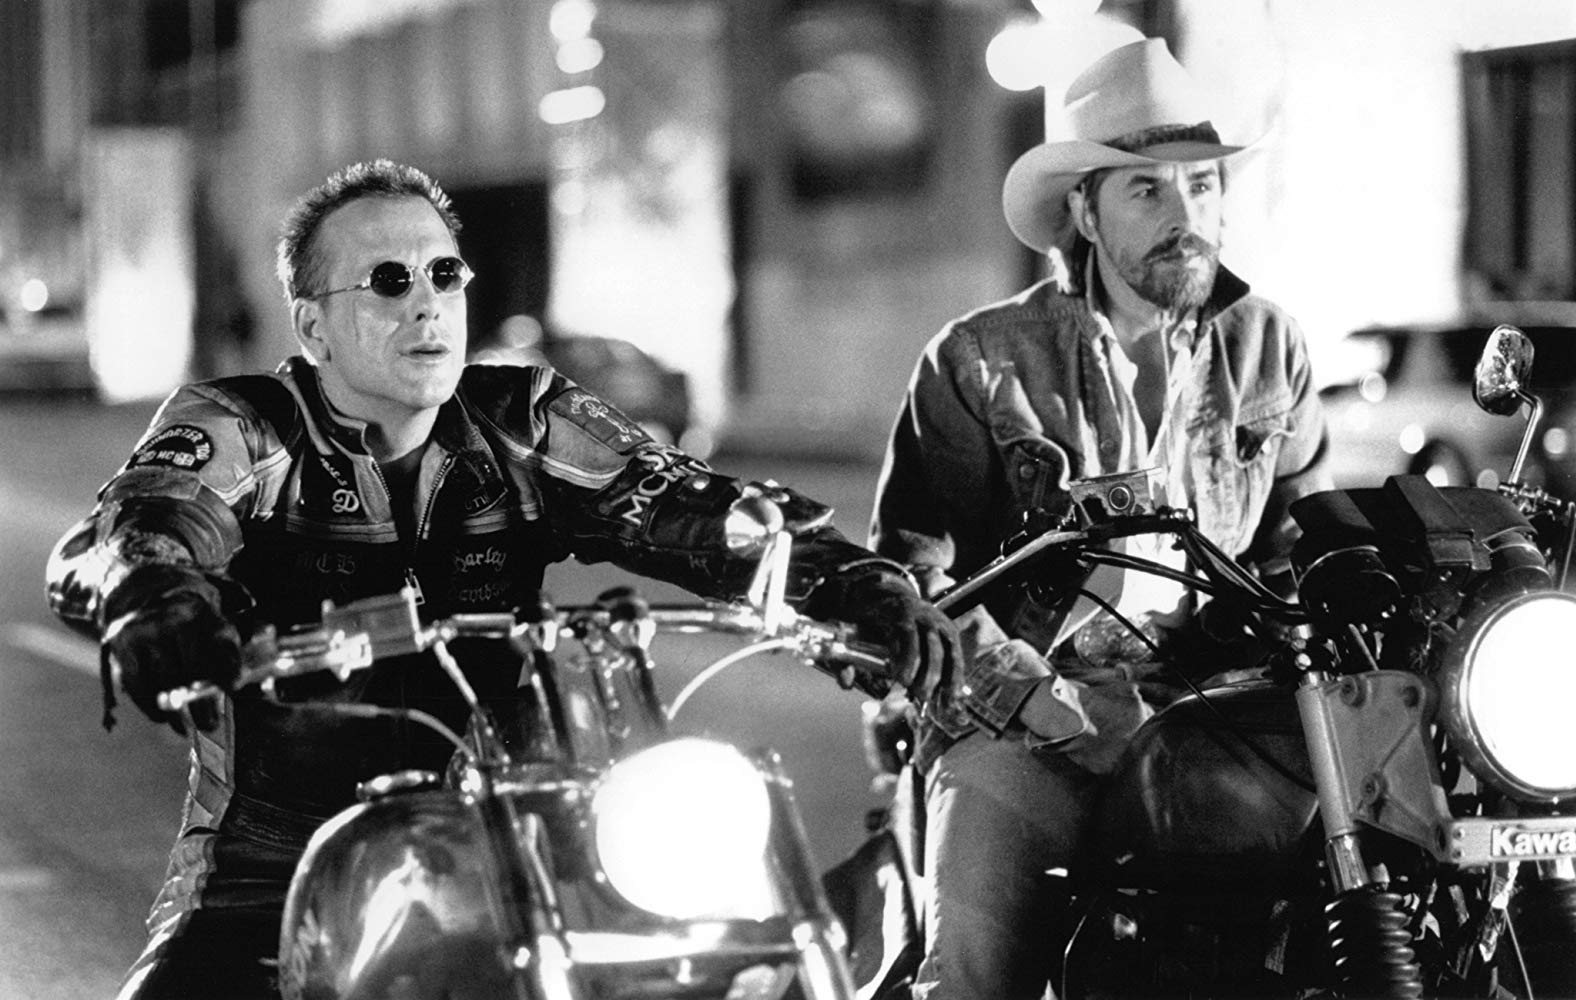 Mickey Rourke, Don Johnson as bikers in Harley Davidson and the Marlboro Man (1991)